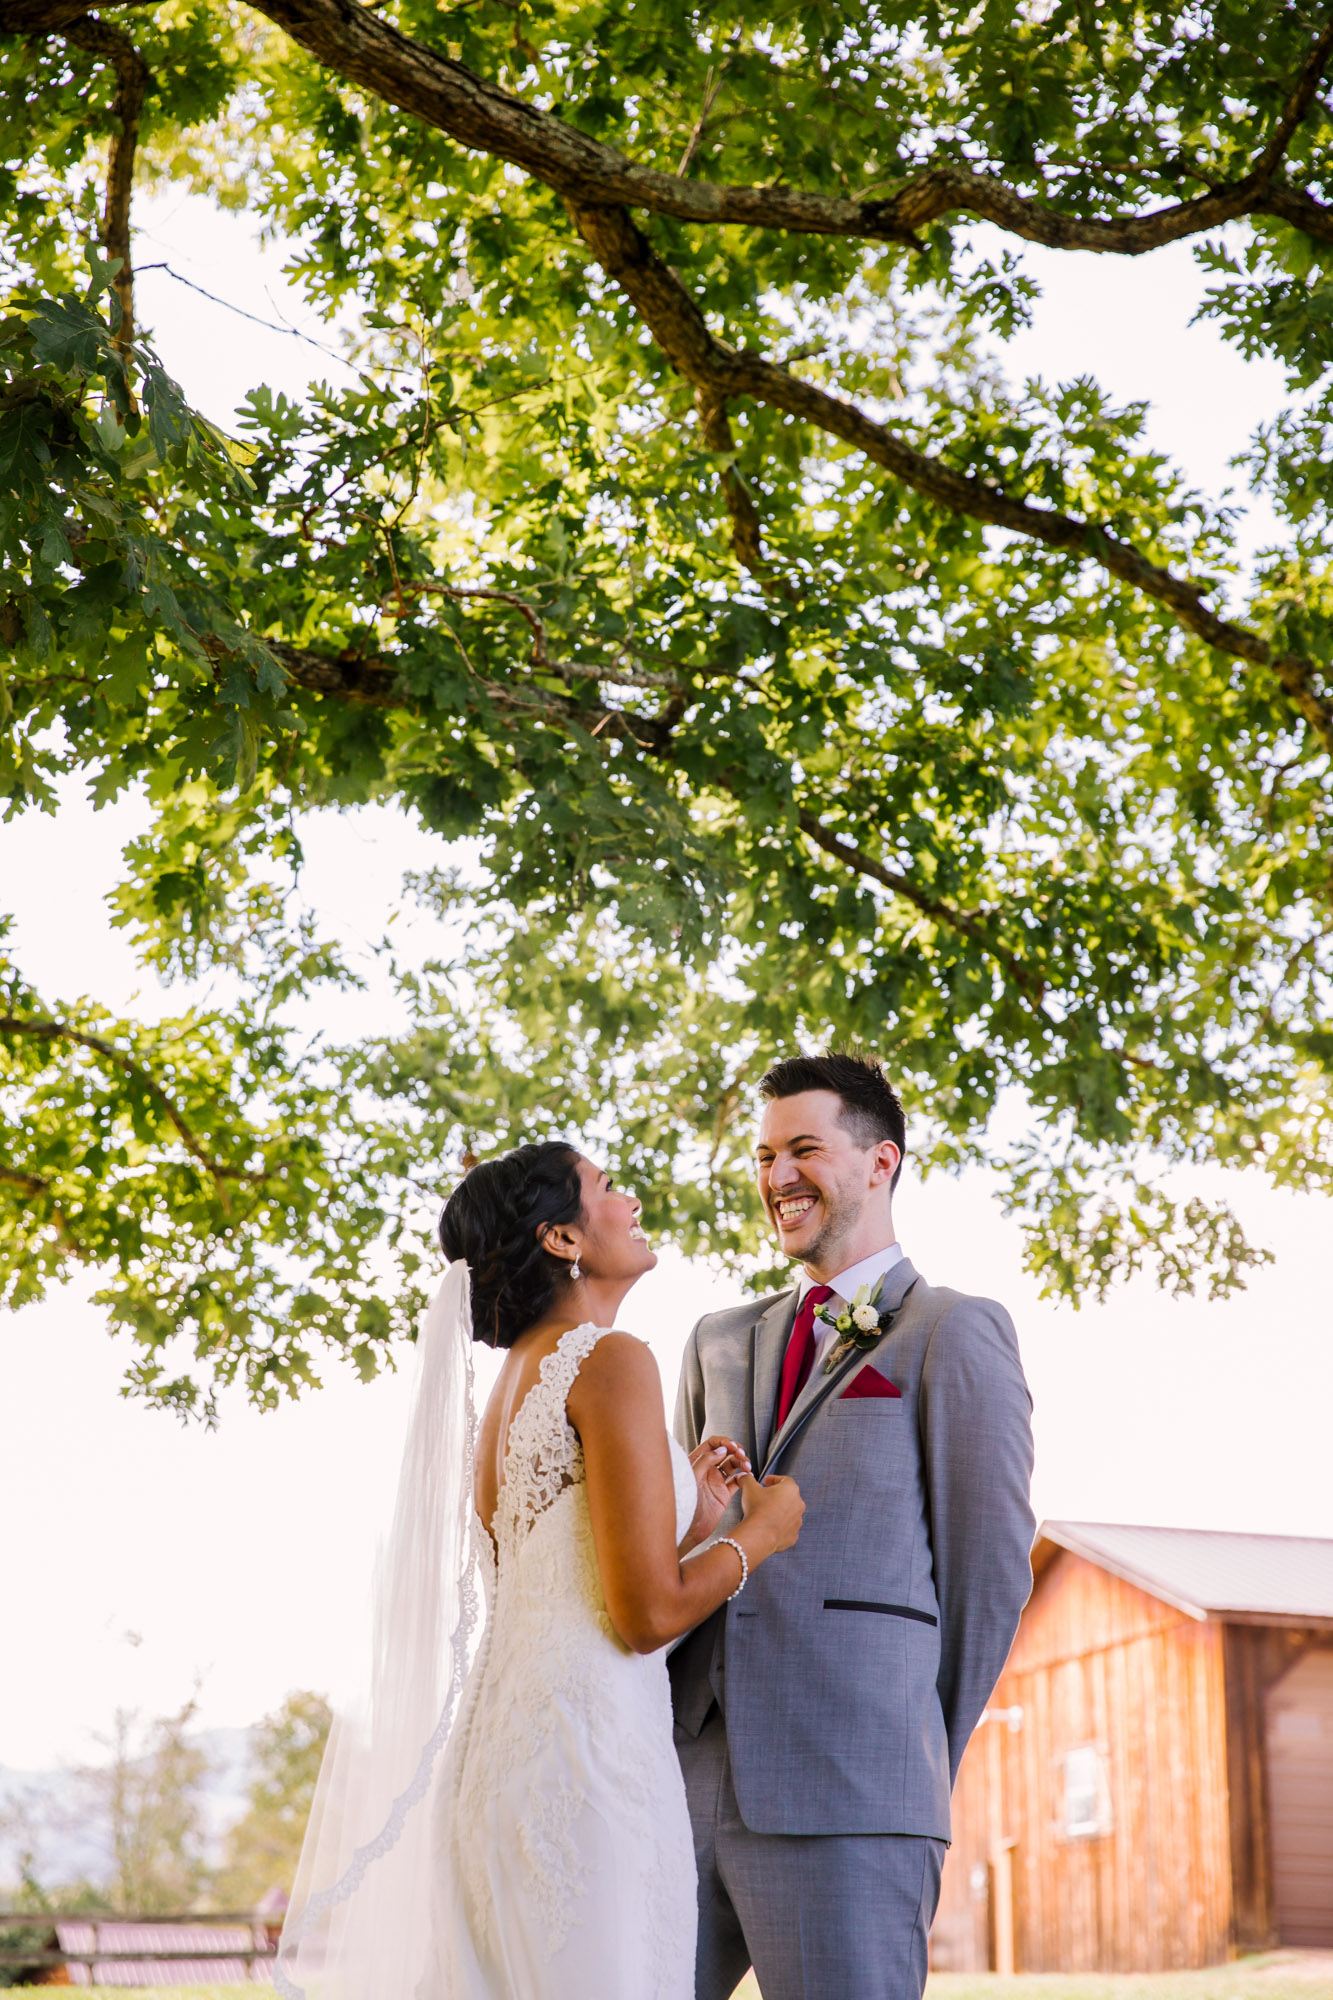 Waynesville NC Wedding Photography | Bride and Groom Laughing